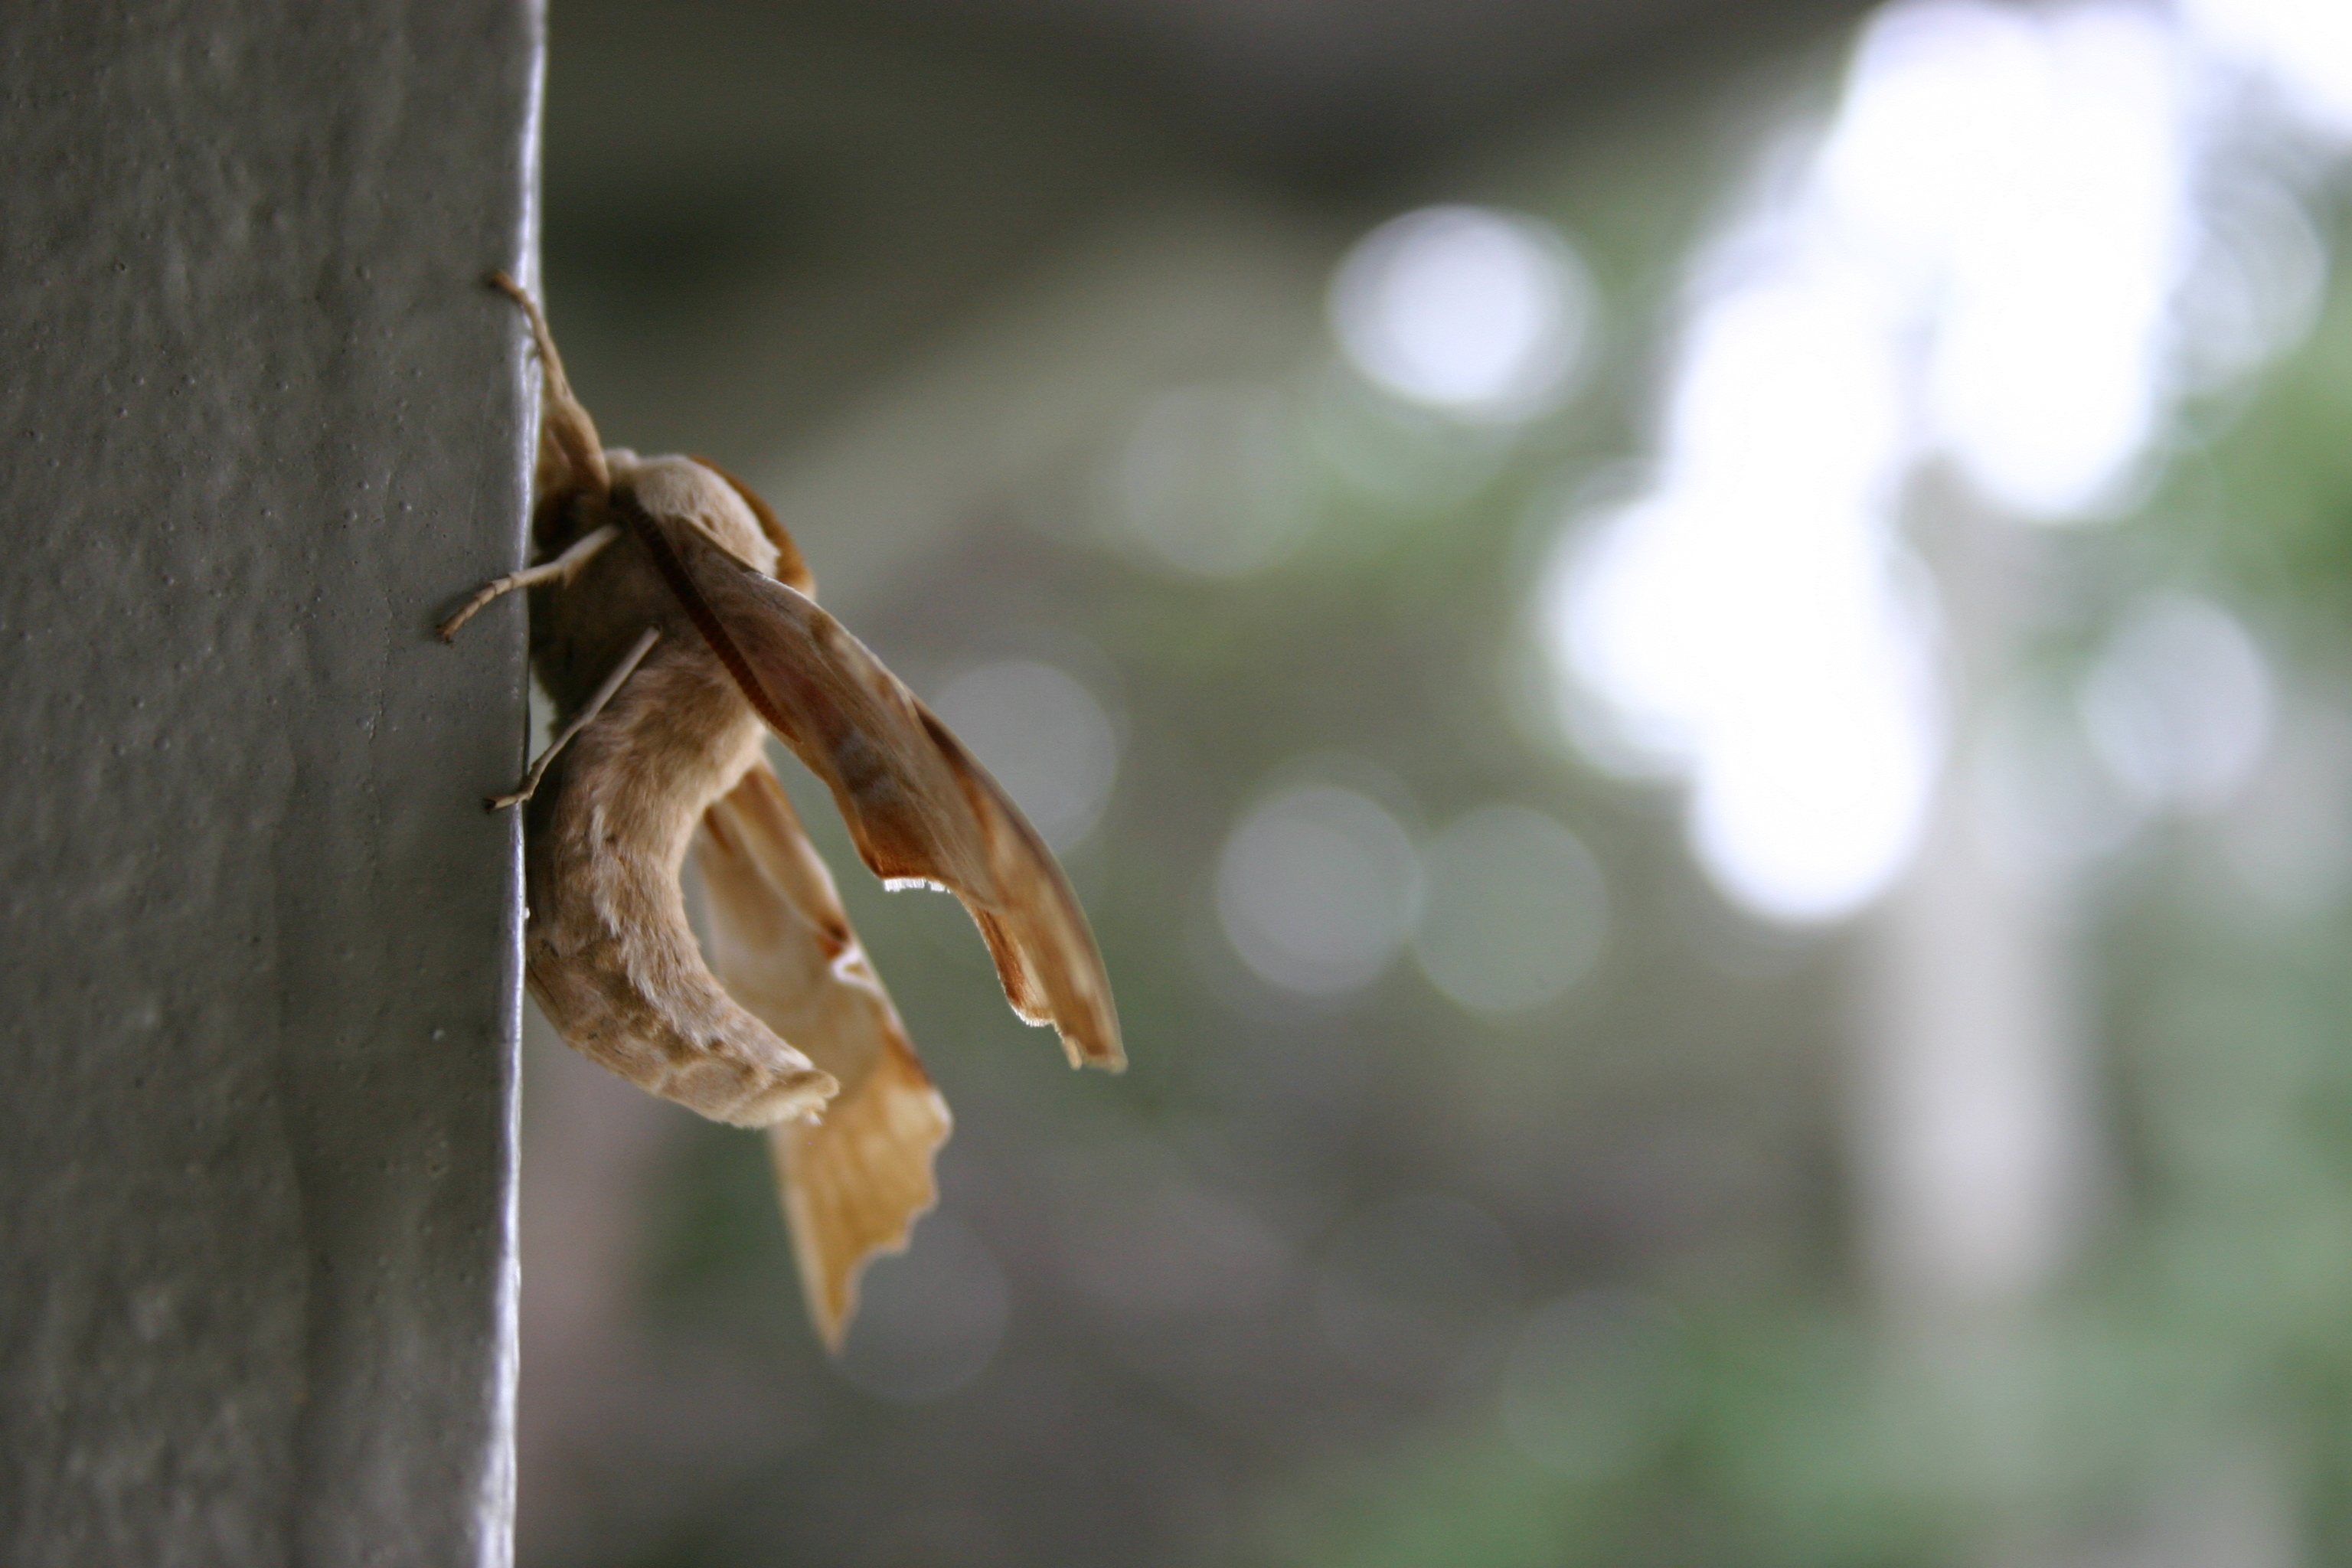 A brown-and-cream-colored moth with a curved body clings to a wall.